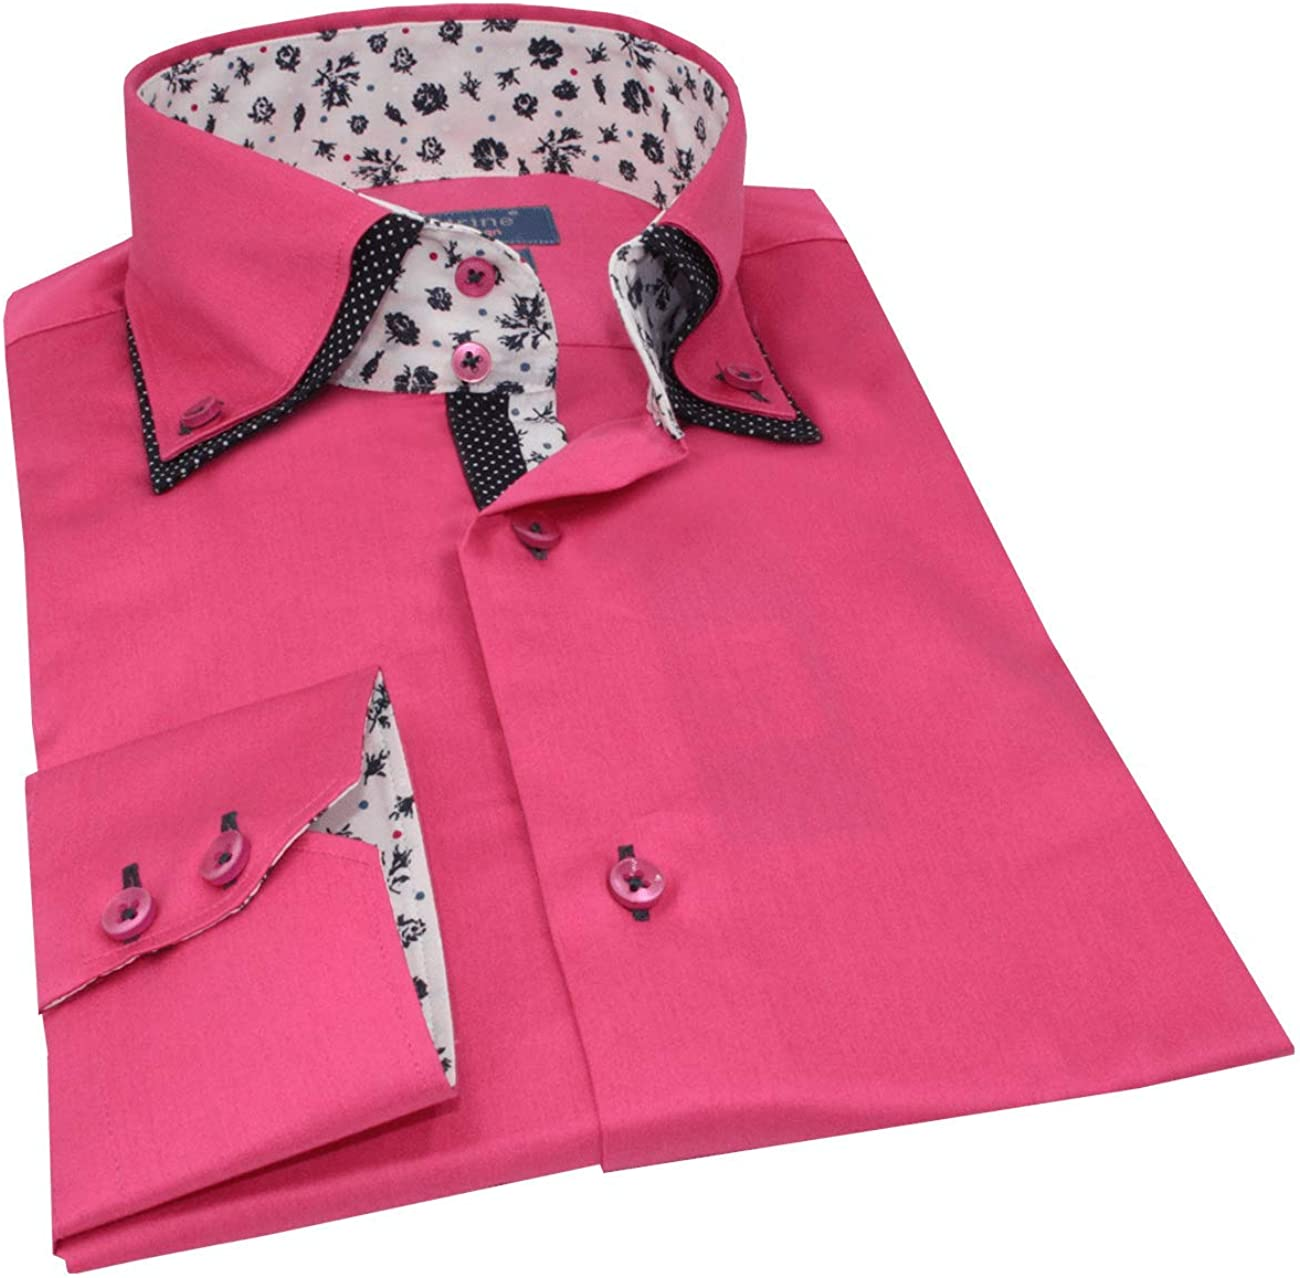 Hombre Camisa Slim Fit Color Rosa Fucsia Doble Collar Flor contrastante - L, Rose Fushia: Amazon.es: Ropa y accesorios